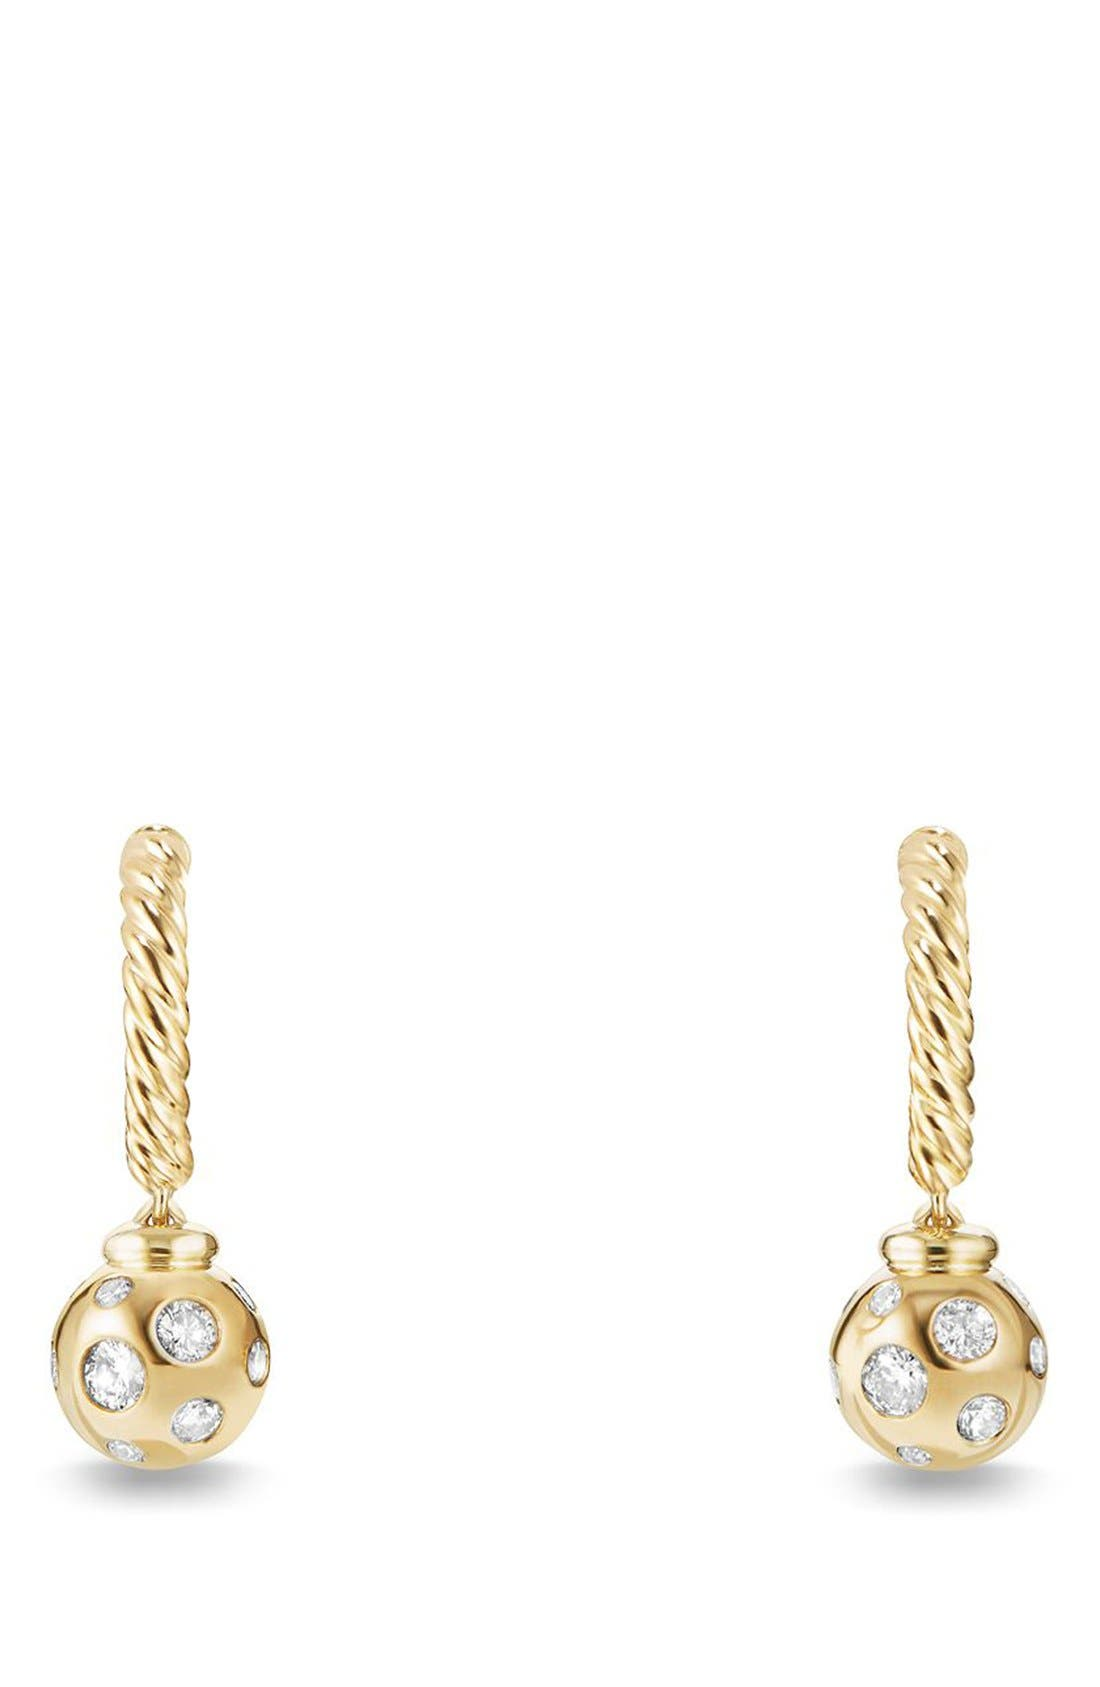 David Yurman 'Solari' Hoop Earrings with Diamonds in 18K Gold